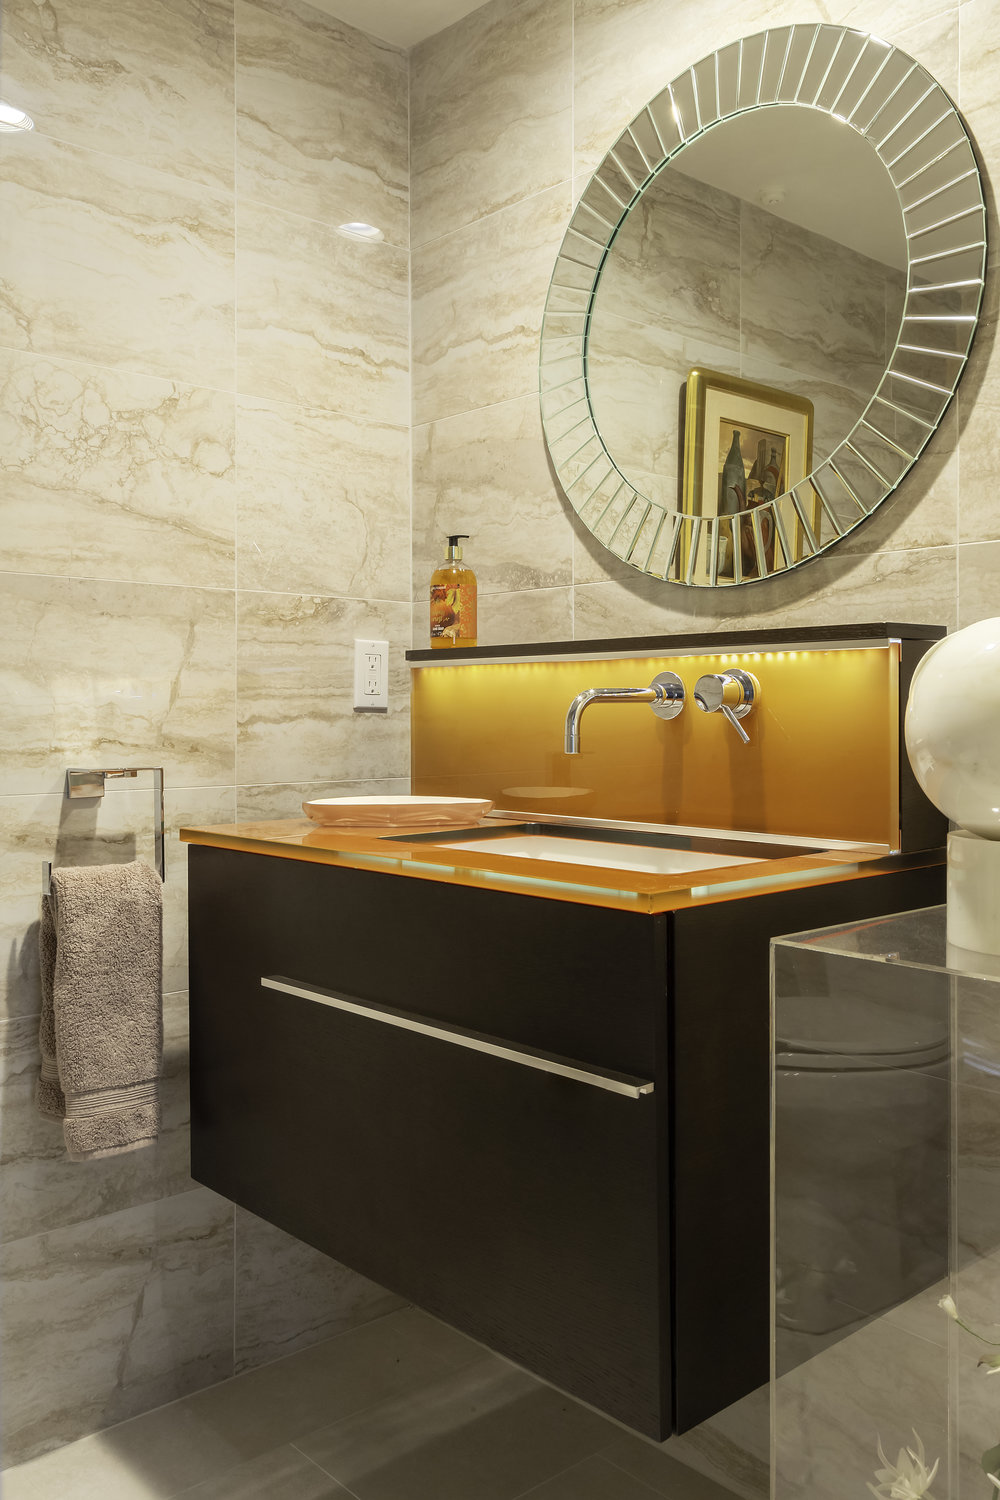 Classic style bathroom with orange surfaced sink and round mirror hanging above